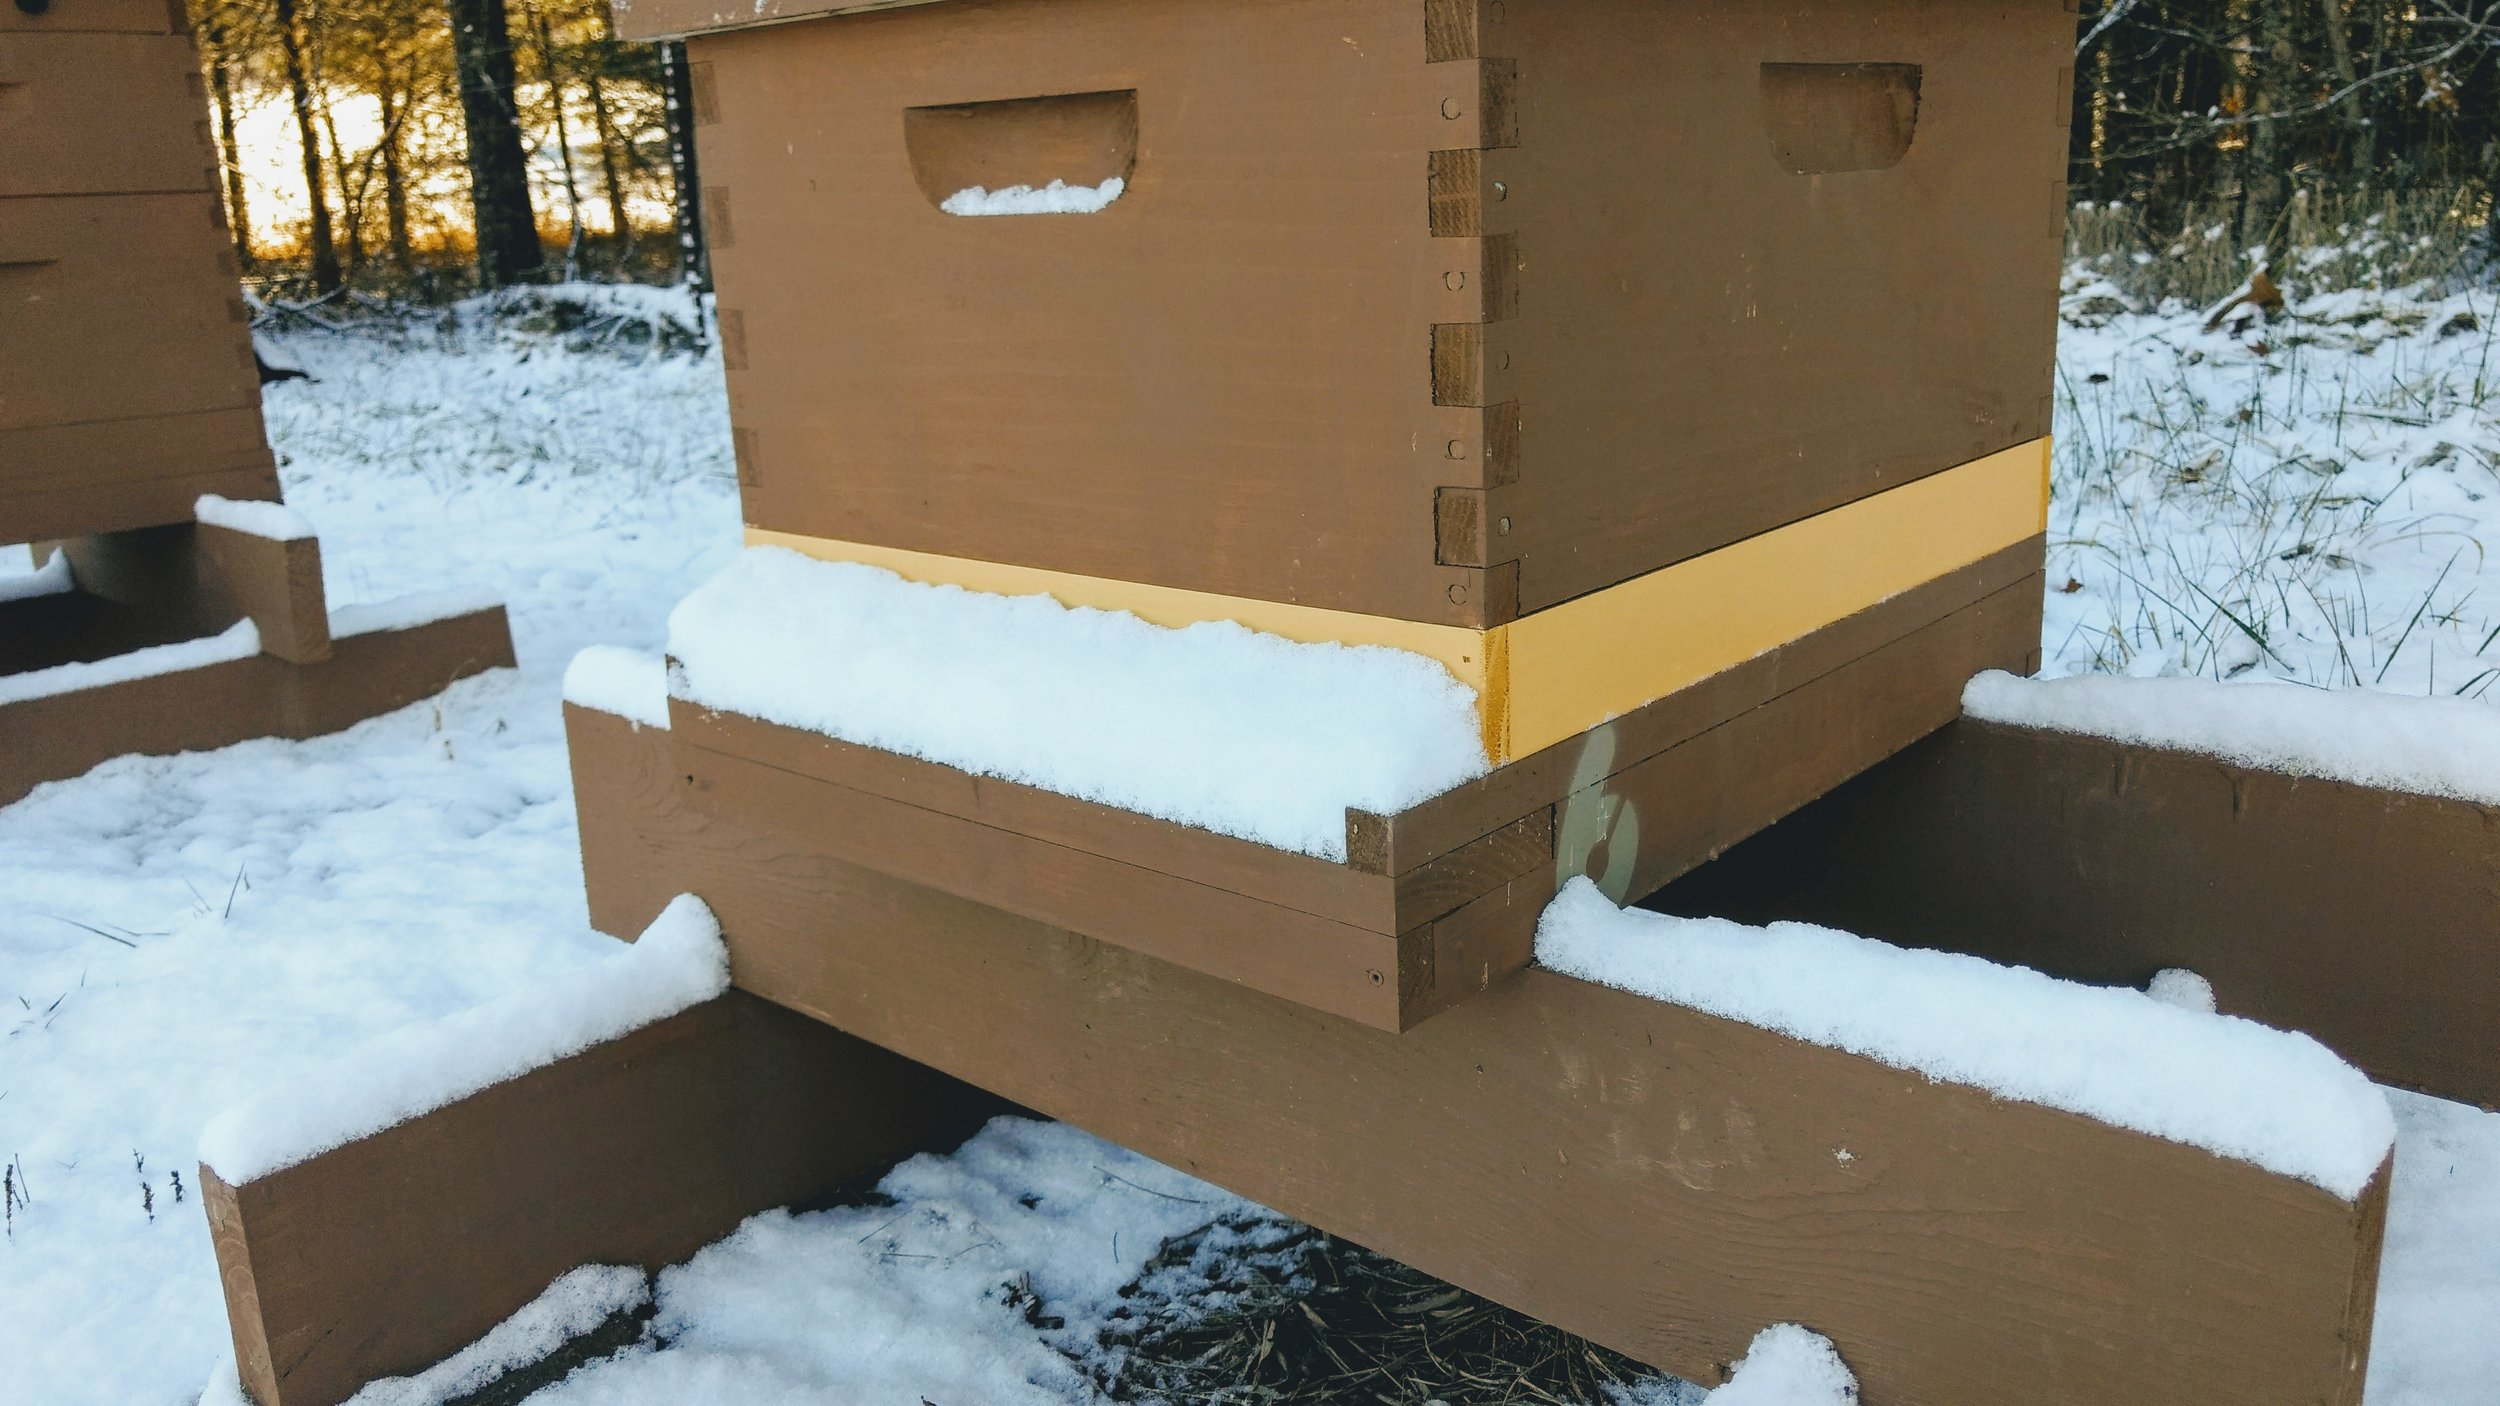 Hive without a snow visor